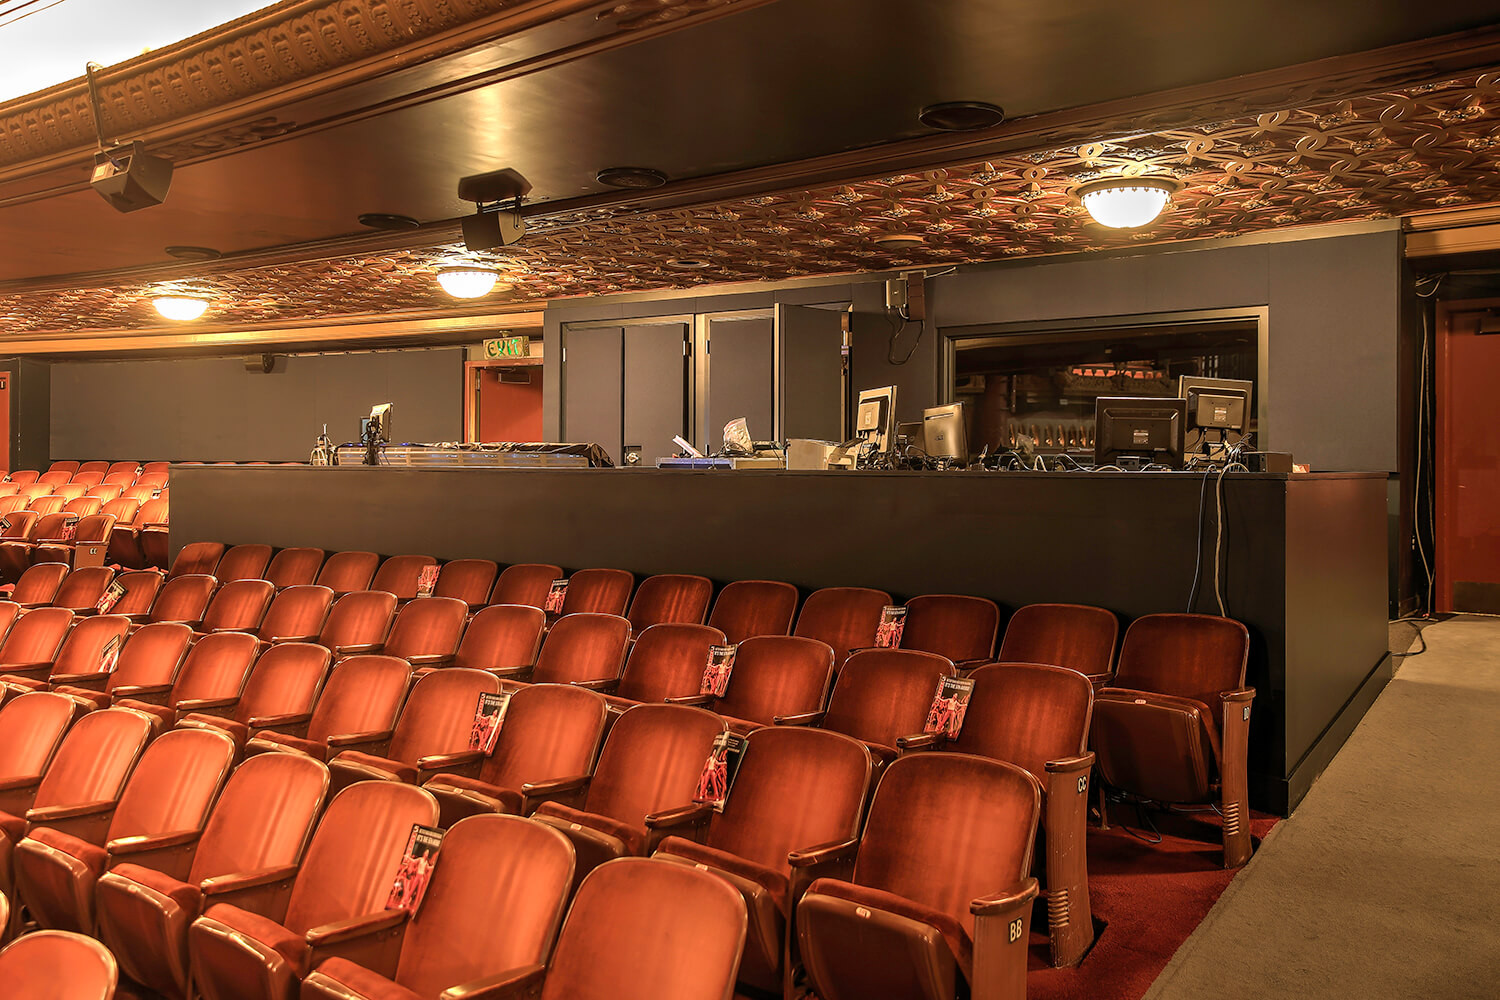 5th Avenue Theatre image